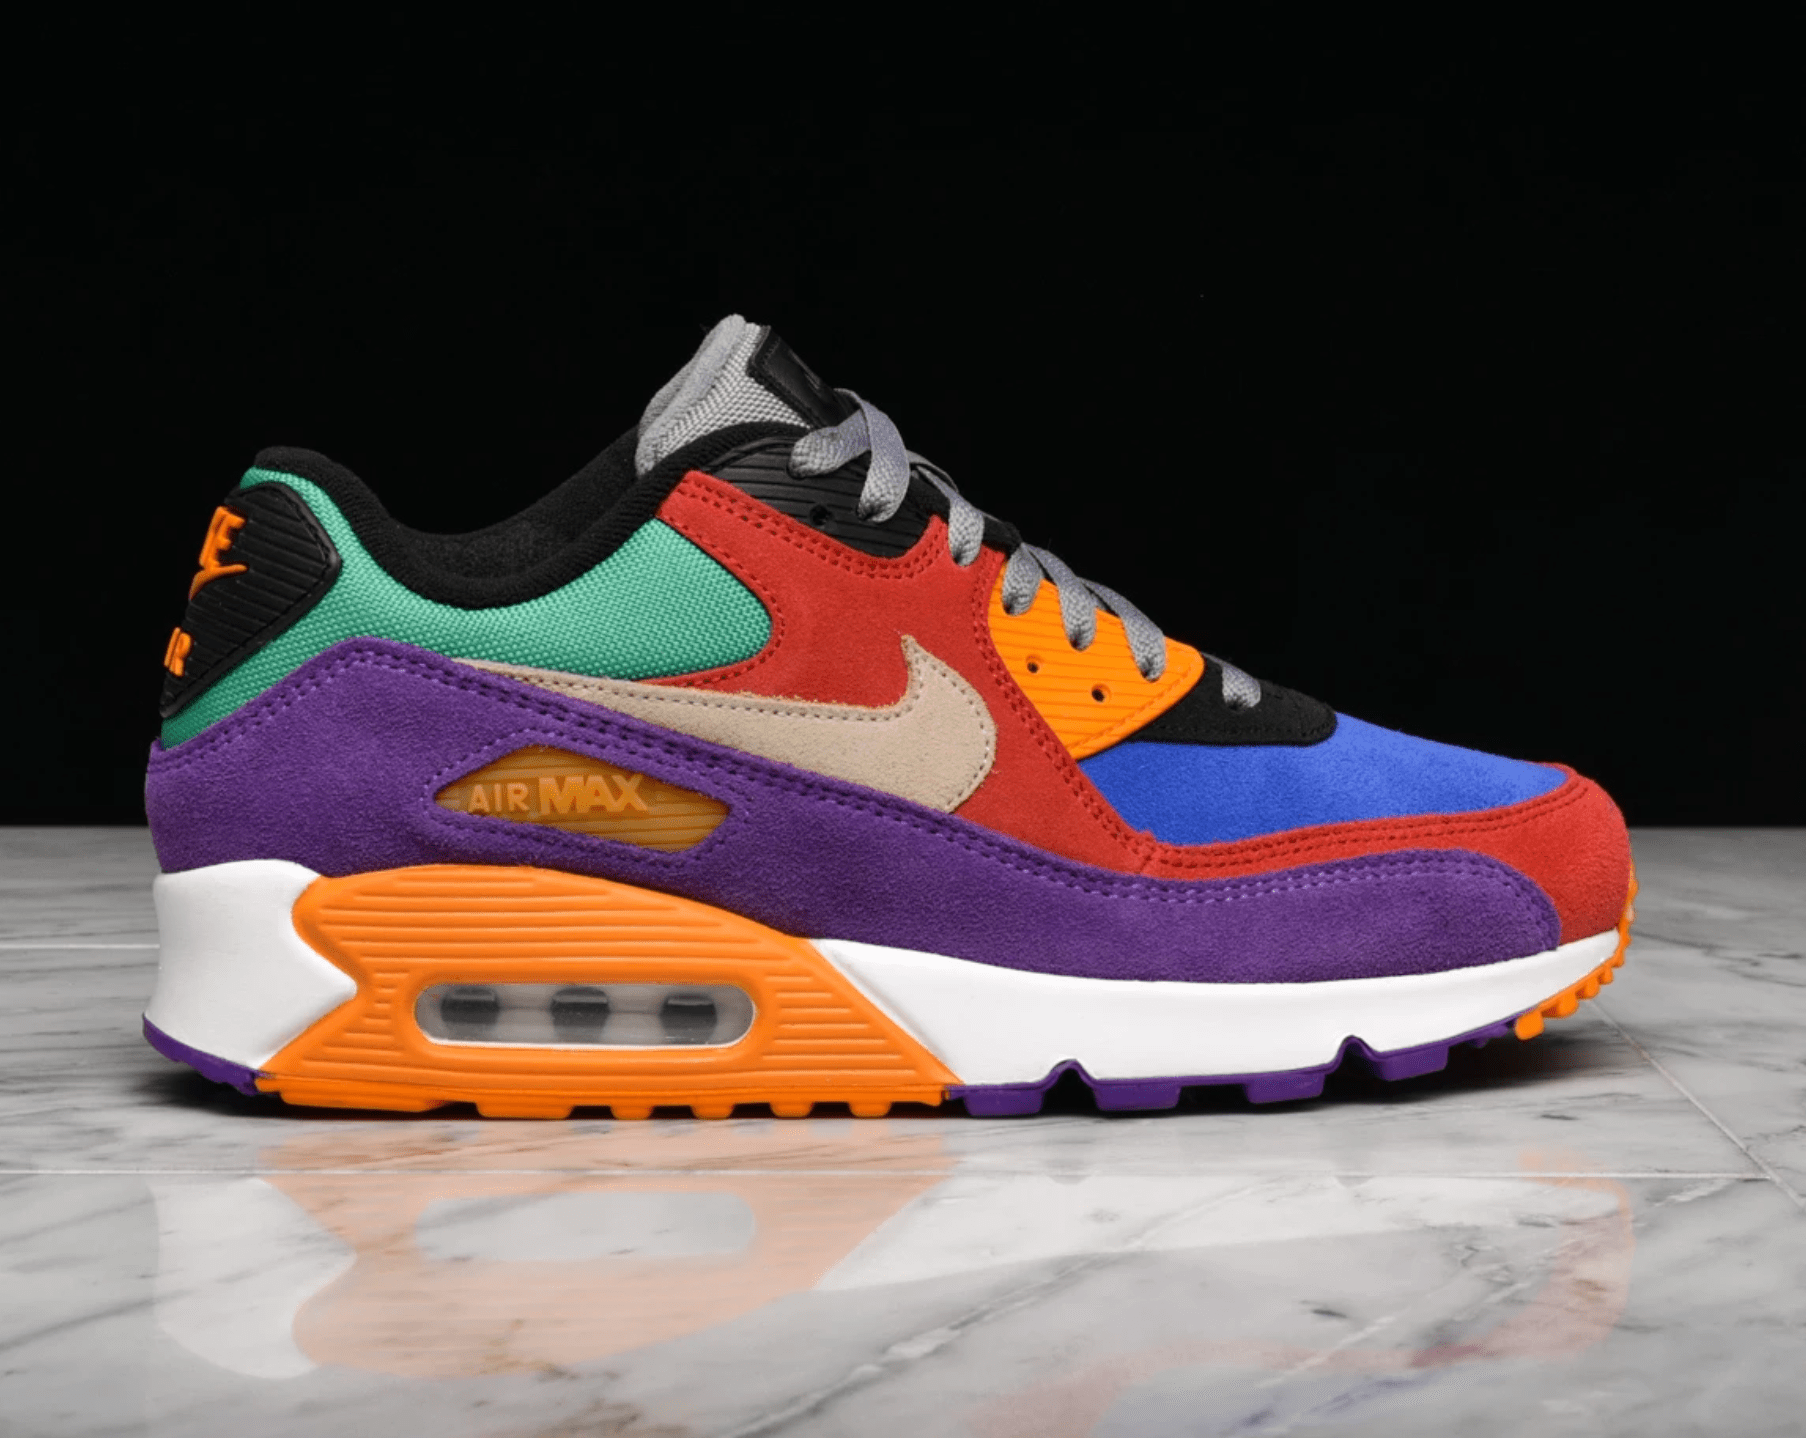 Nike Air Max 90 Hyper Grape Apparel Match |